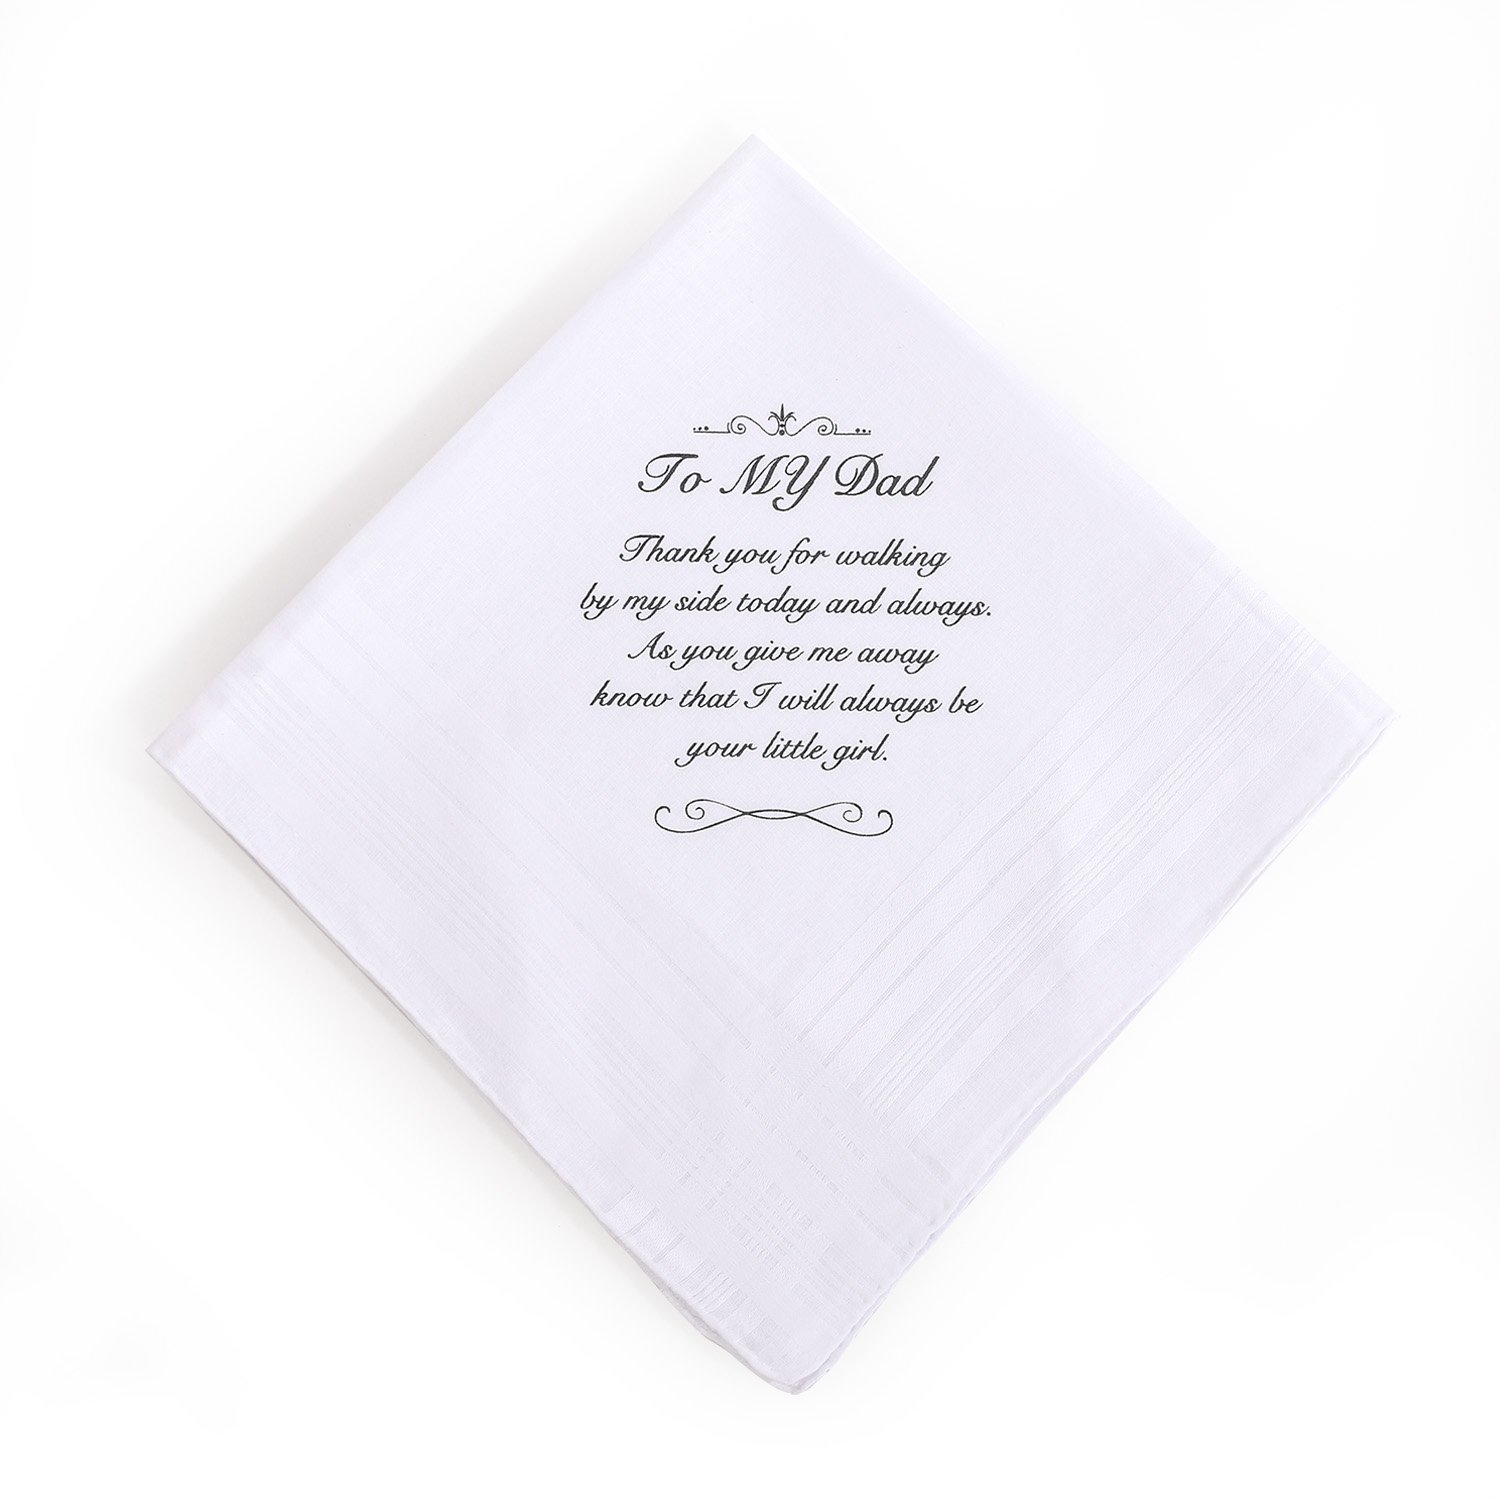 Birthday Thanksgiving Christmas New Year Gift,100/% Cotton for Mother of The Groom Gifts Lings moment Mother of The Bride Gifts Hankie Wedding Handkerchief for Mom Gift